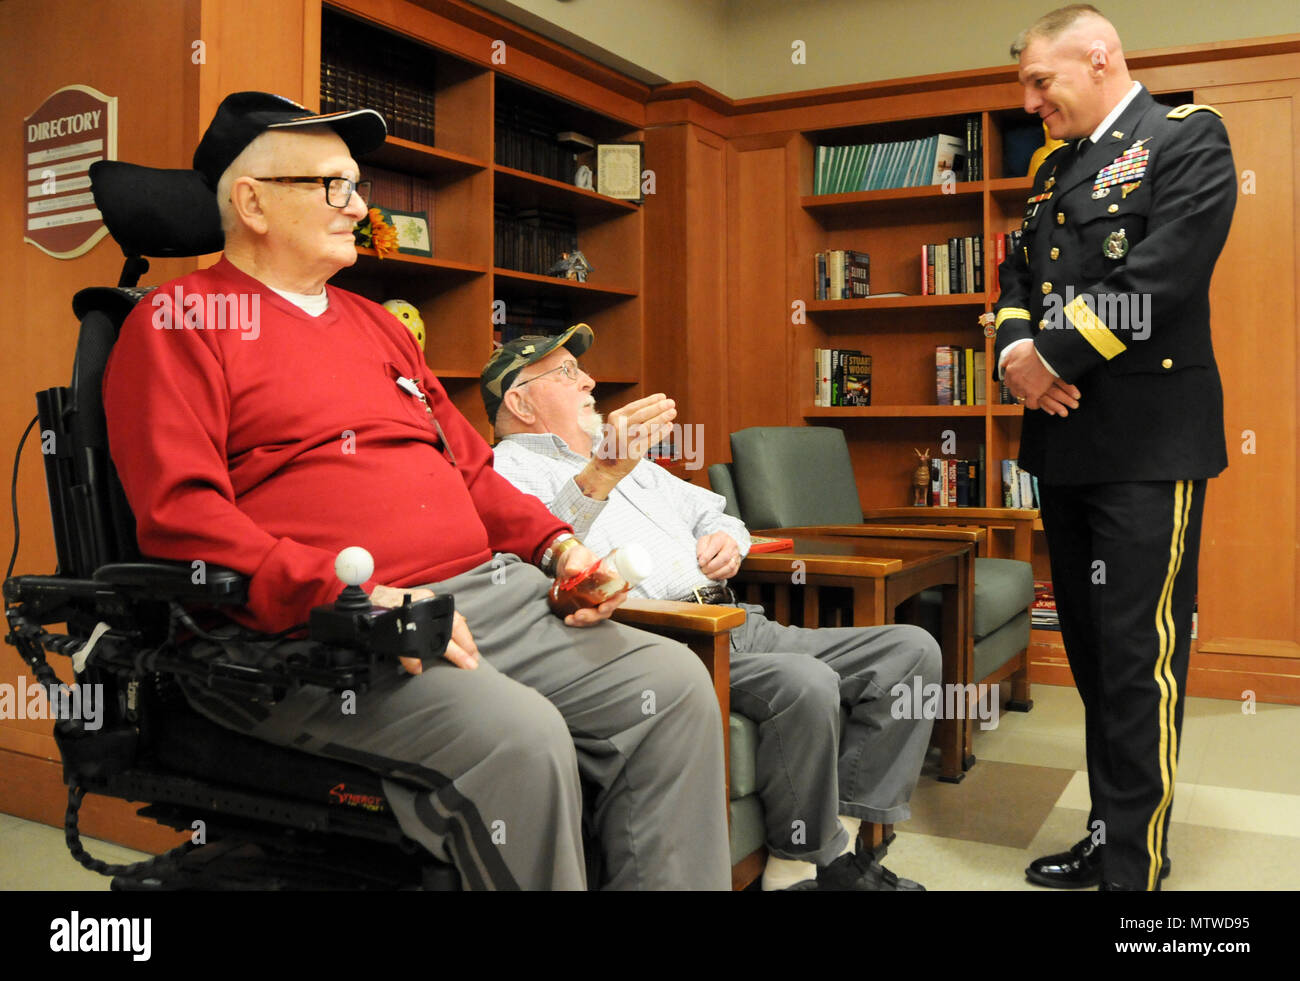 Maj. Gen. Troy D. Kok, commanding general of the U.S. Army Reserve's 99th Regional Support Command headquartered at Joint Base McGuire-Dix-Lakehurst, New Jersey, meets with (from left) George A. Teale, an Army private who served in World War II, and Larry H. Stange, a Marine sergeant who served in Korea, during a Jan. 28 visit to the New Jersey Department of Military and Veterans Affairs' Veterans Memorial Home in Vineland, New Jersey. The purpose of Kok's visit was to thank veterans for their service and encourage young Soldiers to spend time with veterans in their local area. - Stock Image